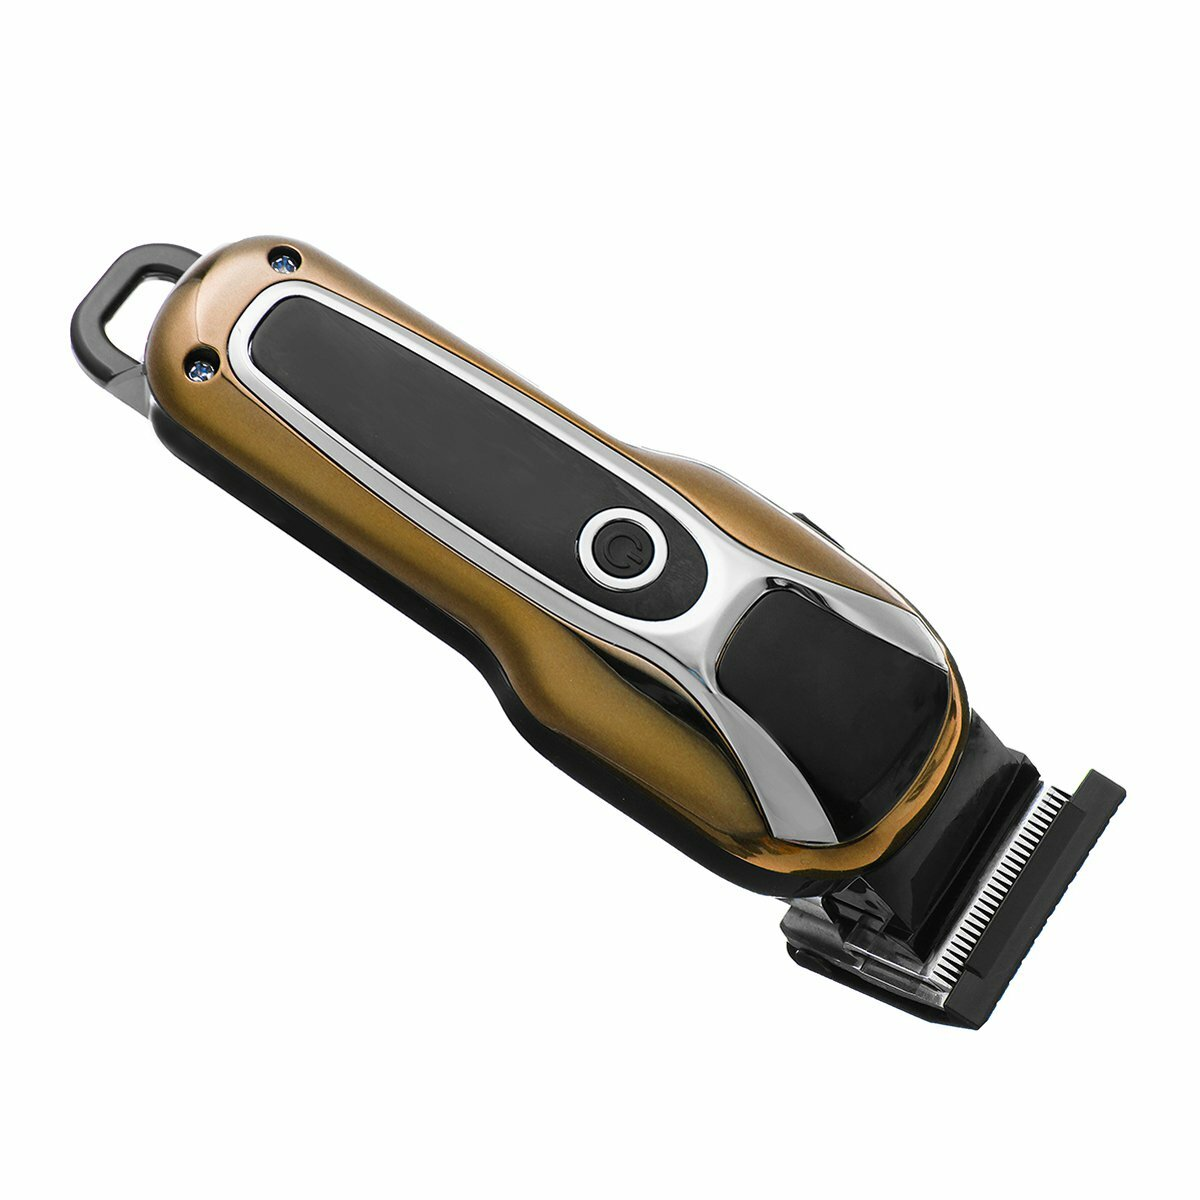 Surker Professional Cordless Hair Clipper Barber Hair Cutting Machine LED LCD Display Electric Hair Trimmer for Men Adult Child - 5